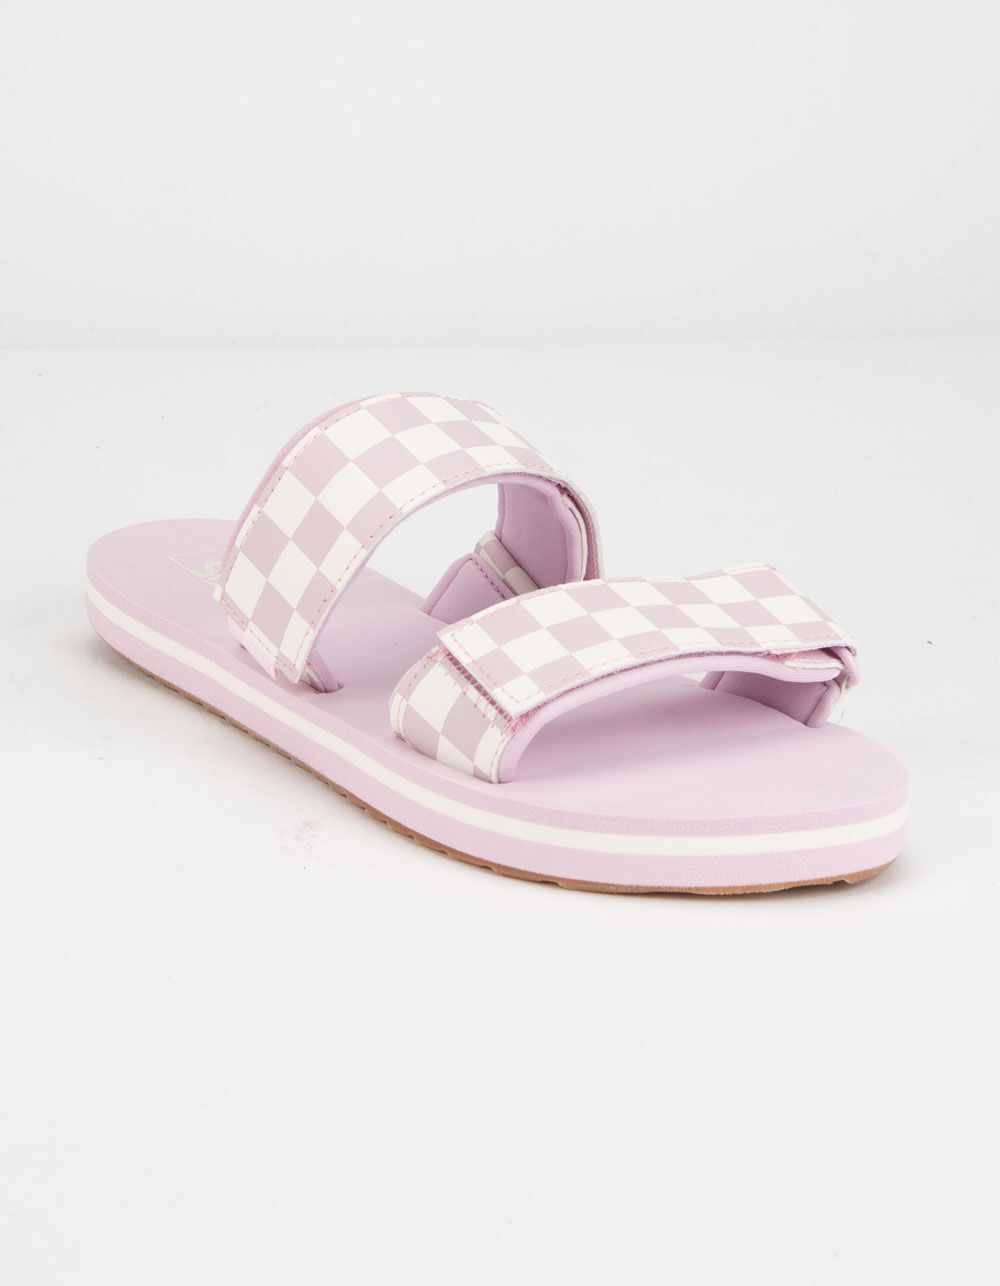 VANS Cayucas Checkerboard Lilac Velcro Slide Sandals